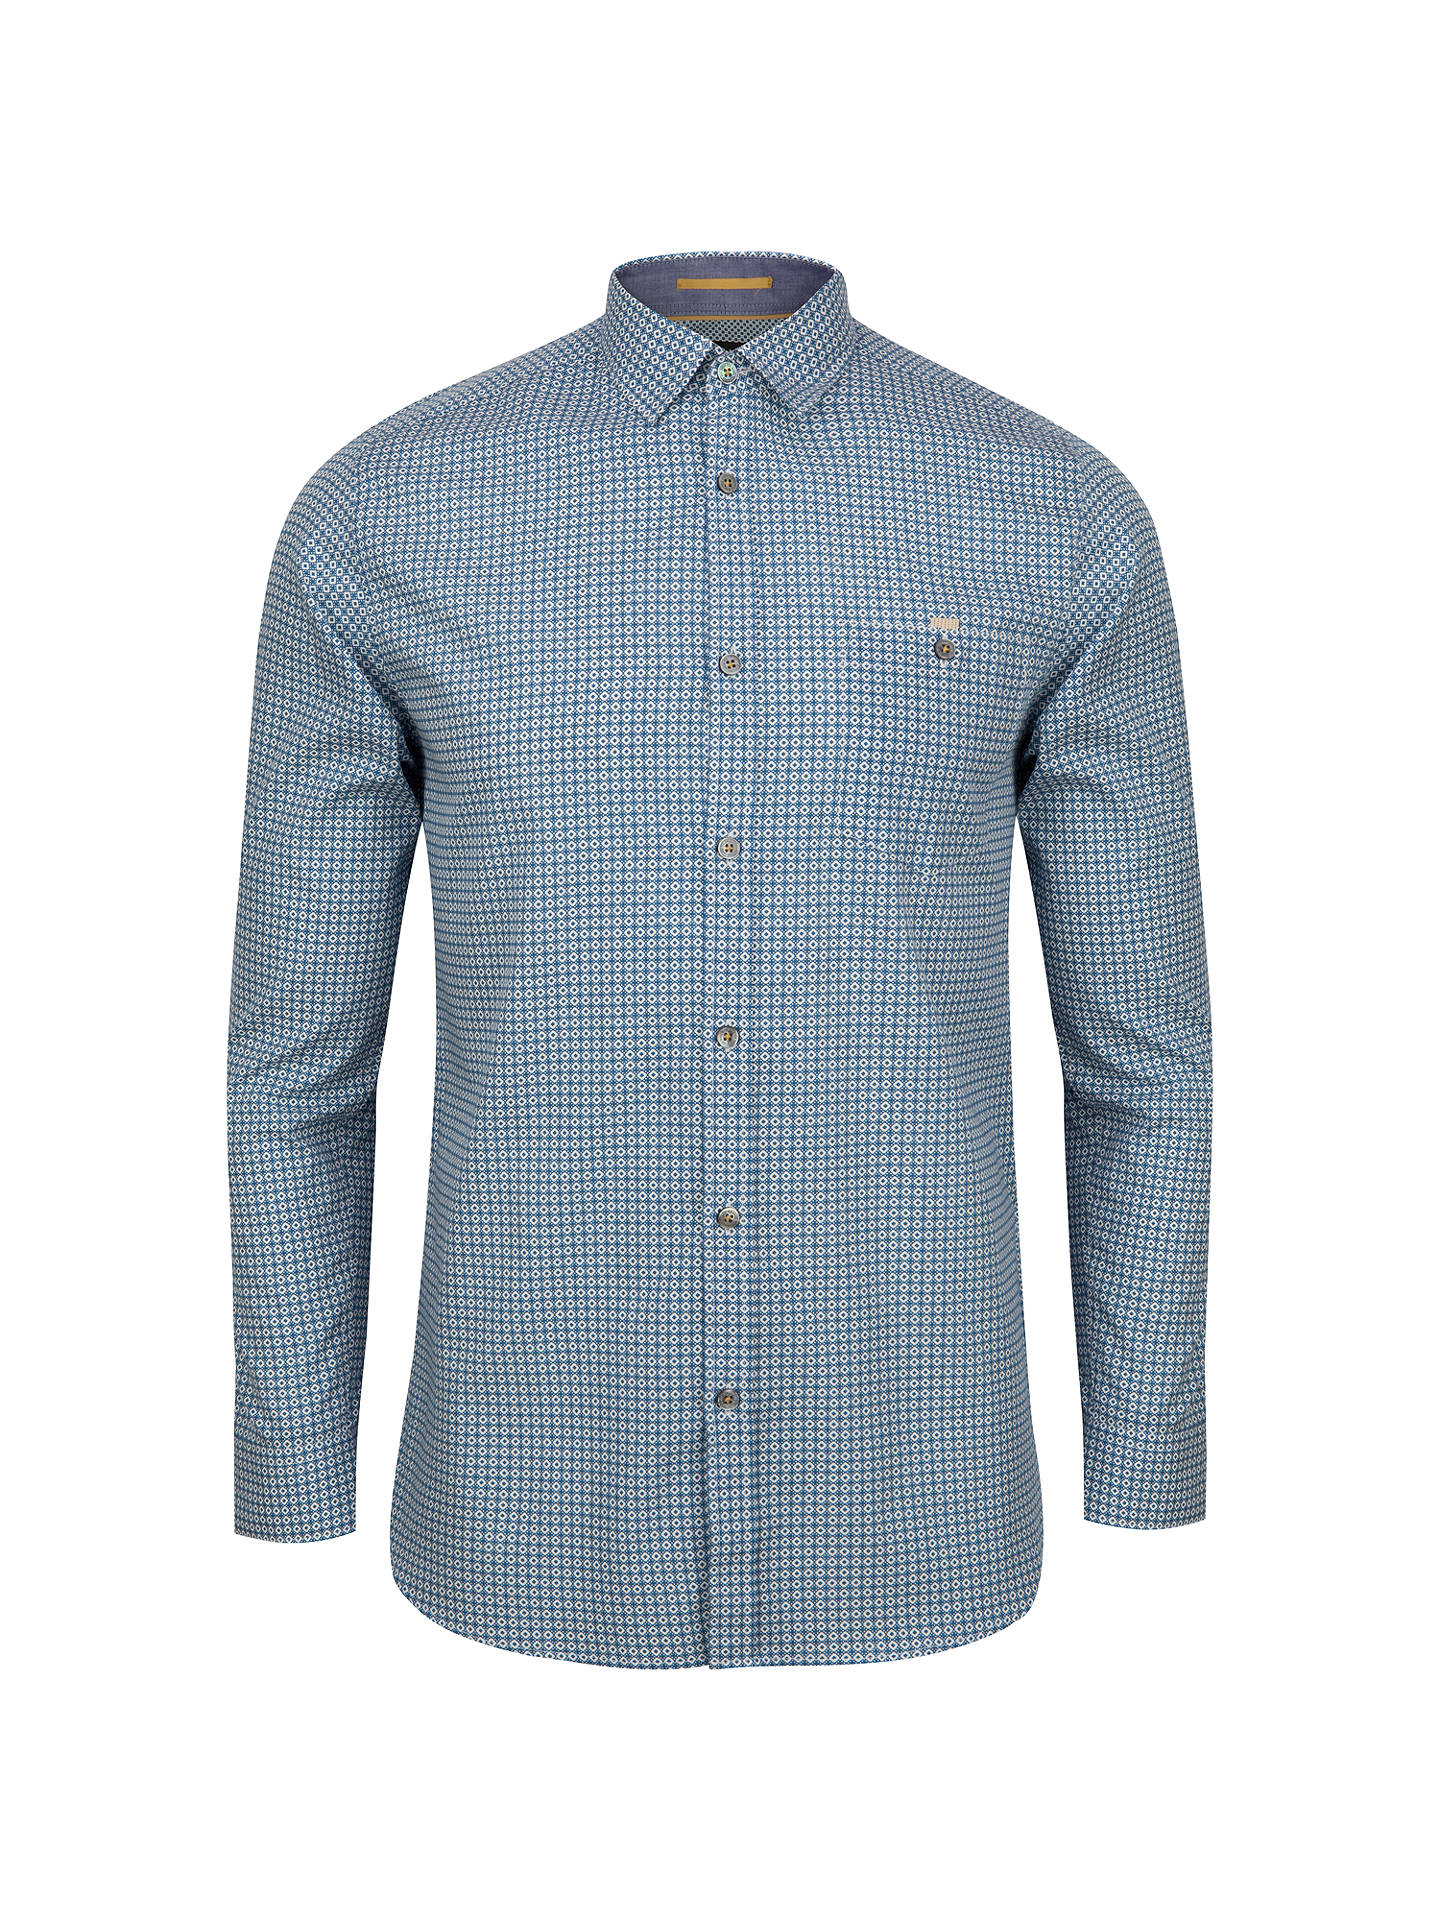 079f0a74608c Ted Baker Thewolf Micro Tile Print Shirt at John Lewis   Partners